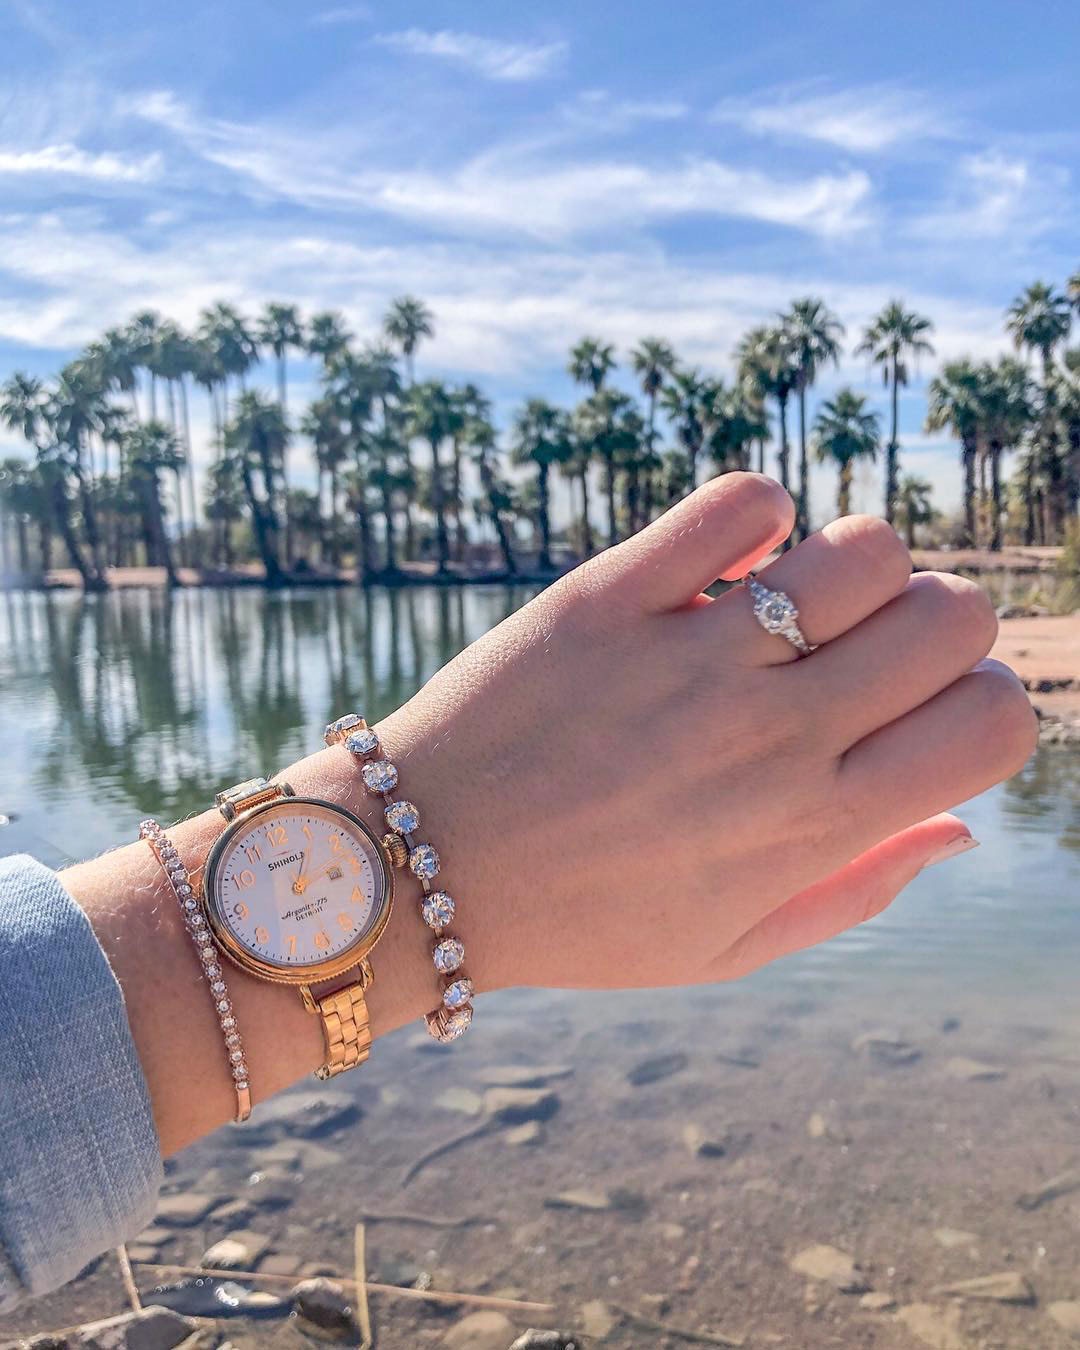 engagement ring selfie palm trees and a body of water